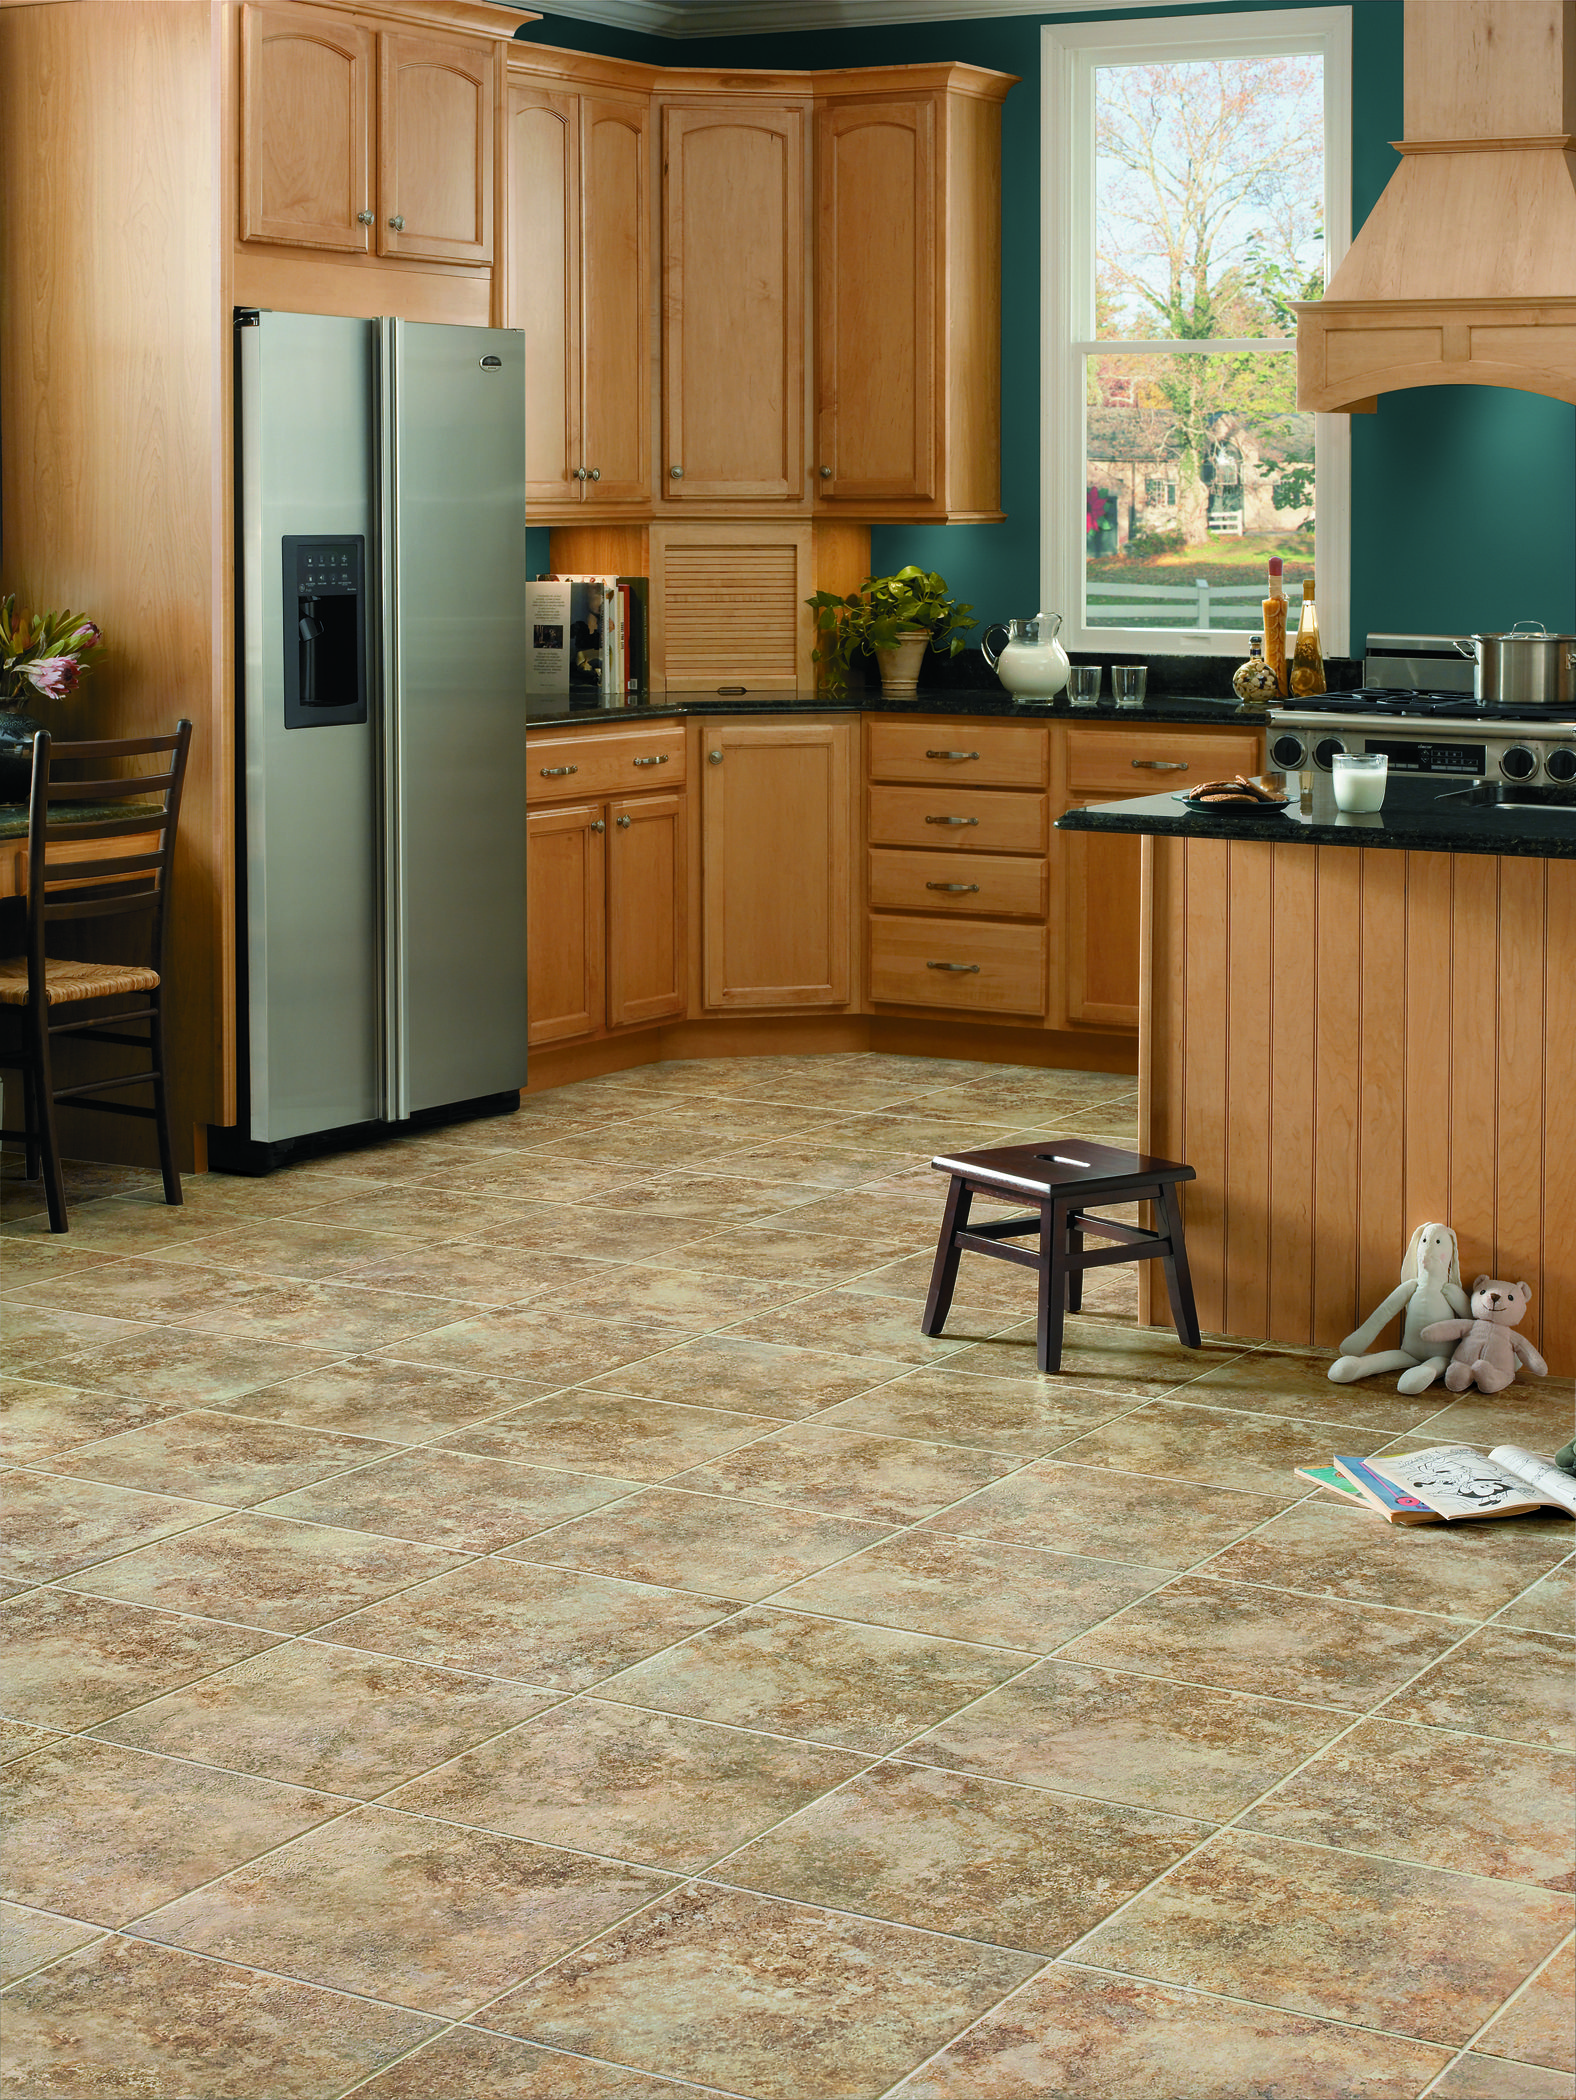 Rapolano in Desert Chimney Cleaning vinyl floors, Vinyl